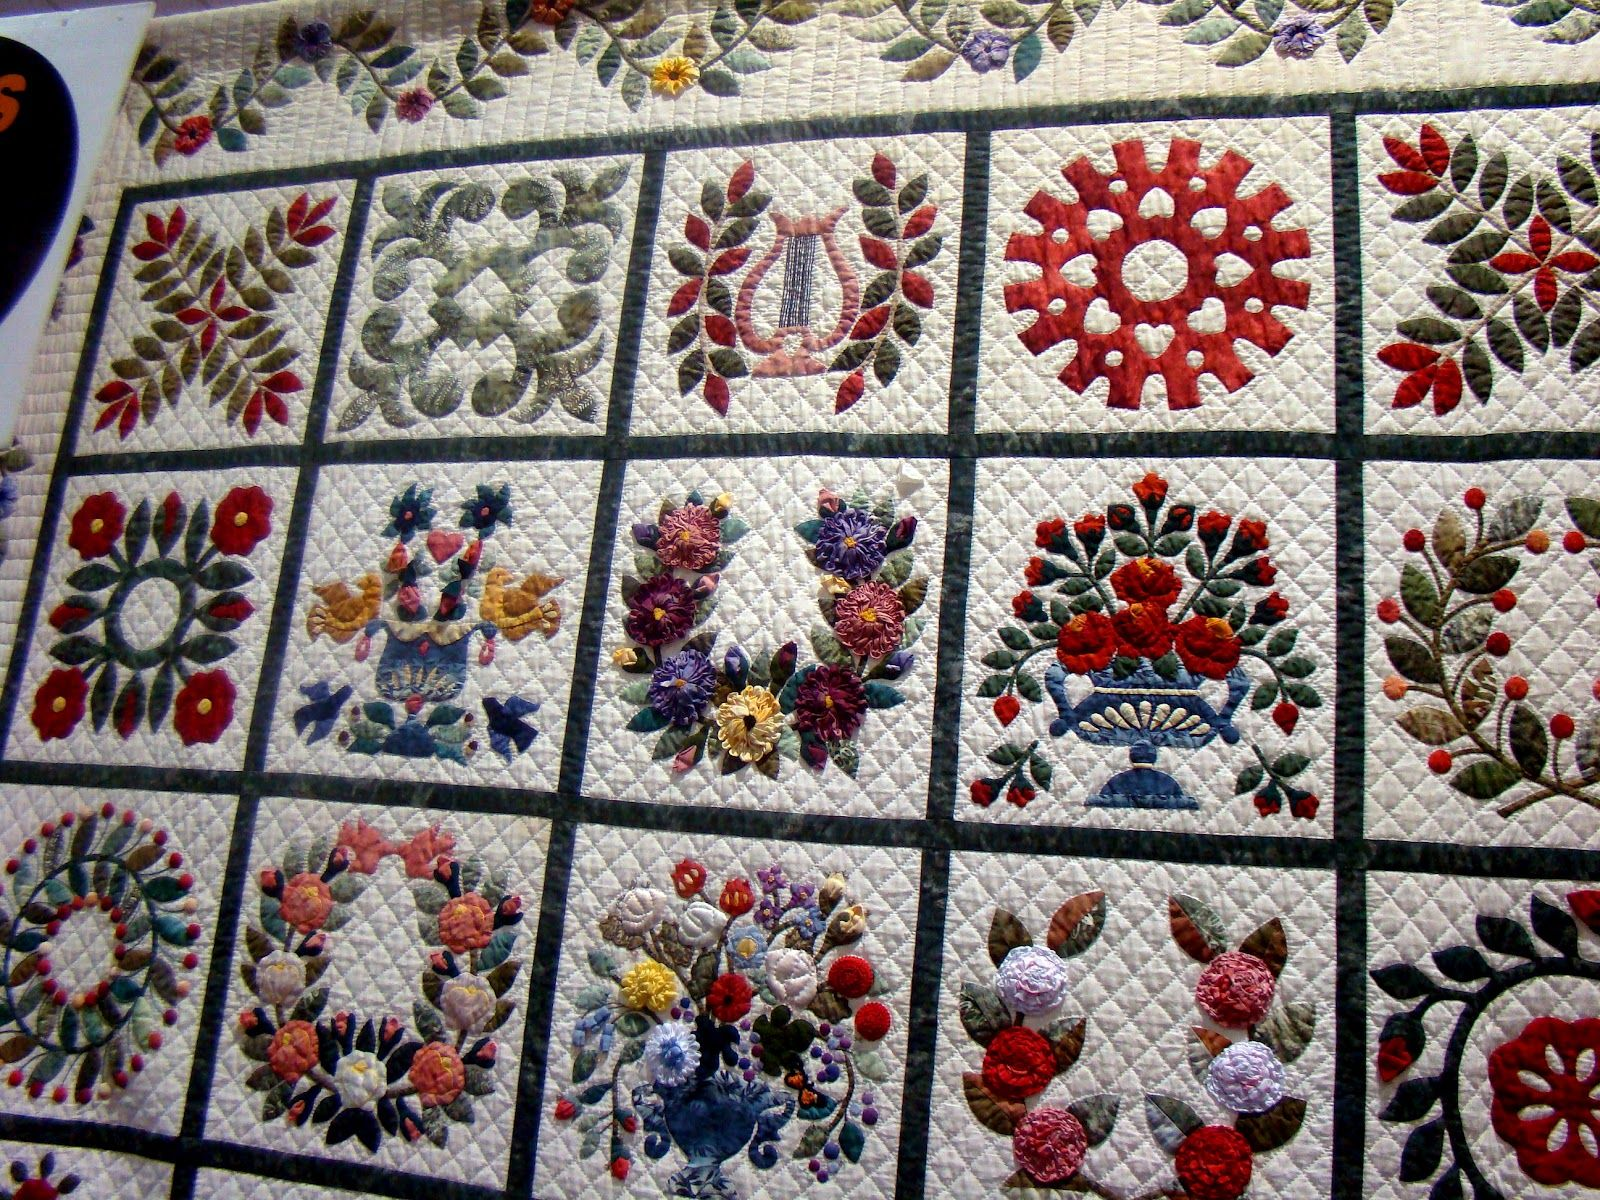 Mennonite Quilt | women needle art | Pinterest | Applique quilts : mennonite quilt - Adamdwight.com